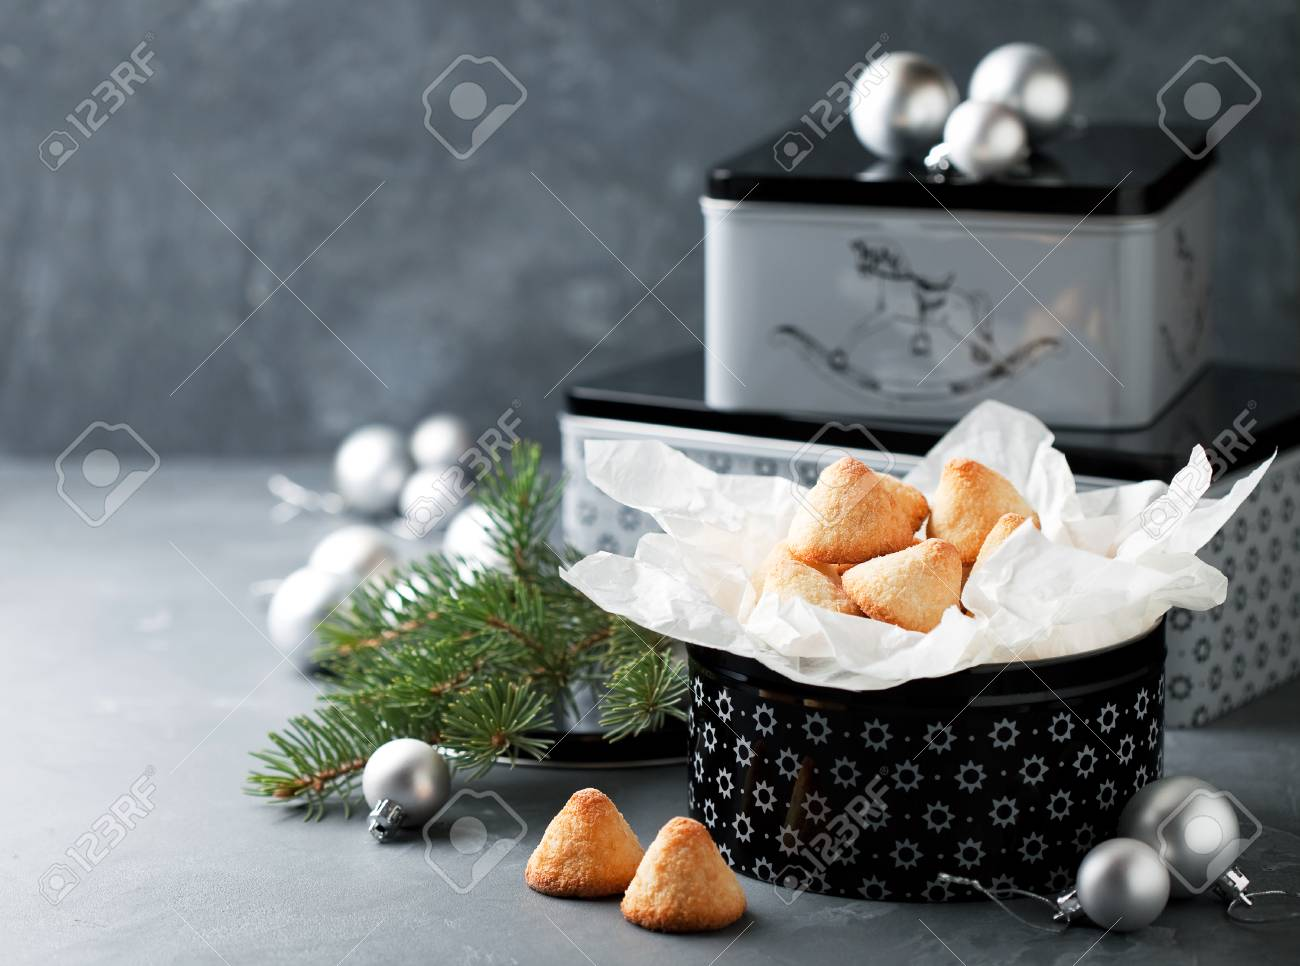 Coconut Macaroon In Gift Box For Christmas Selective Focus Stock Photo Picture And Royalty Free Image Image 51500116